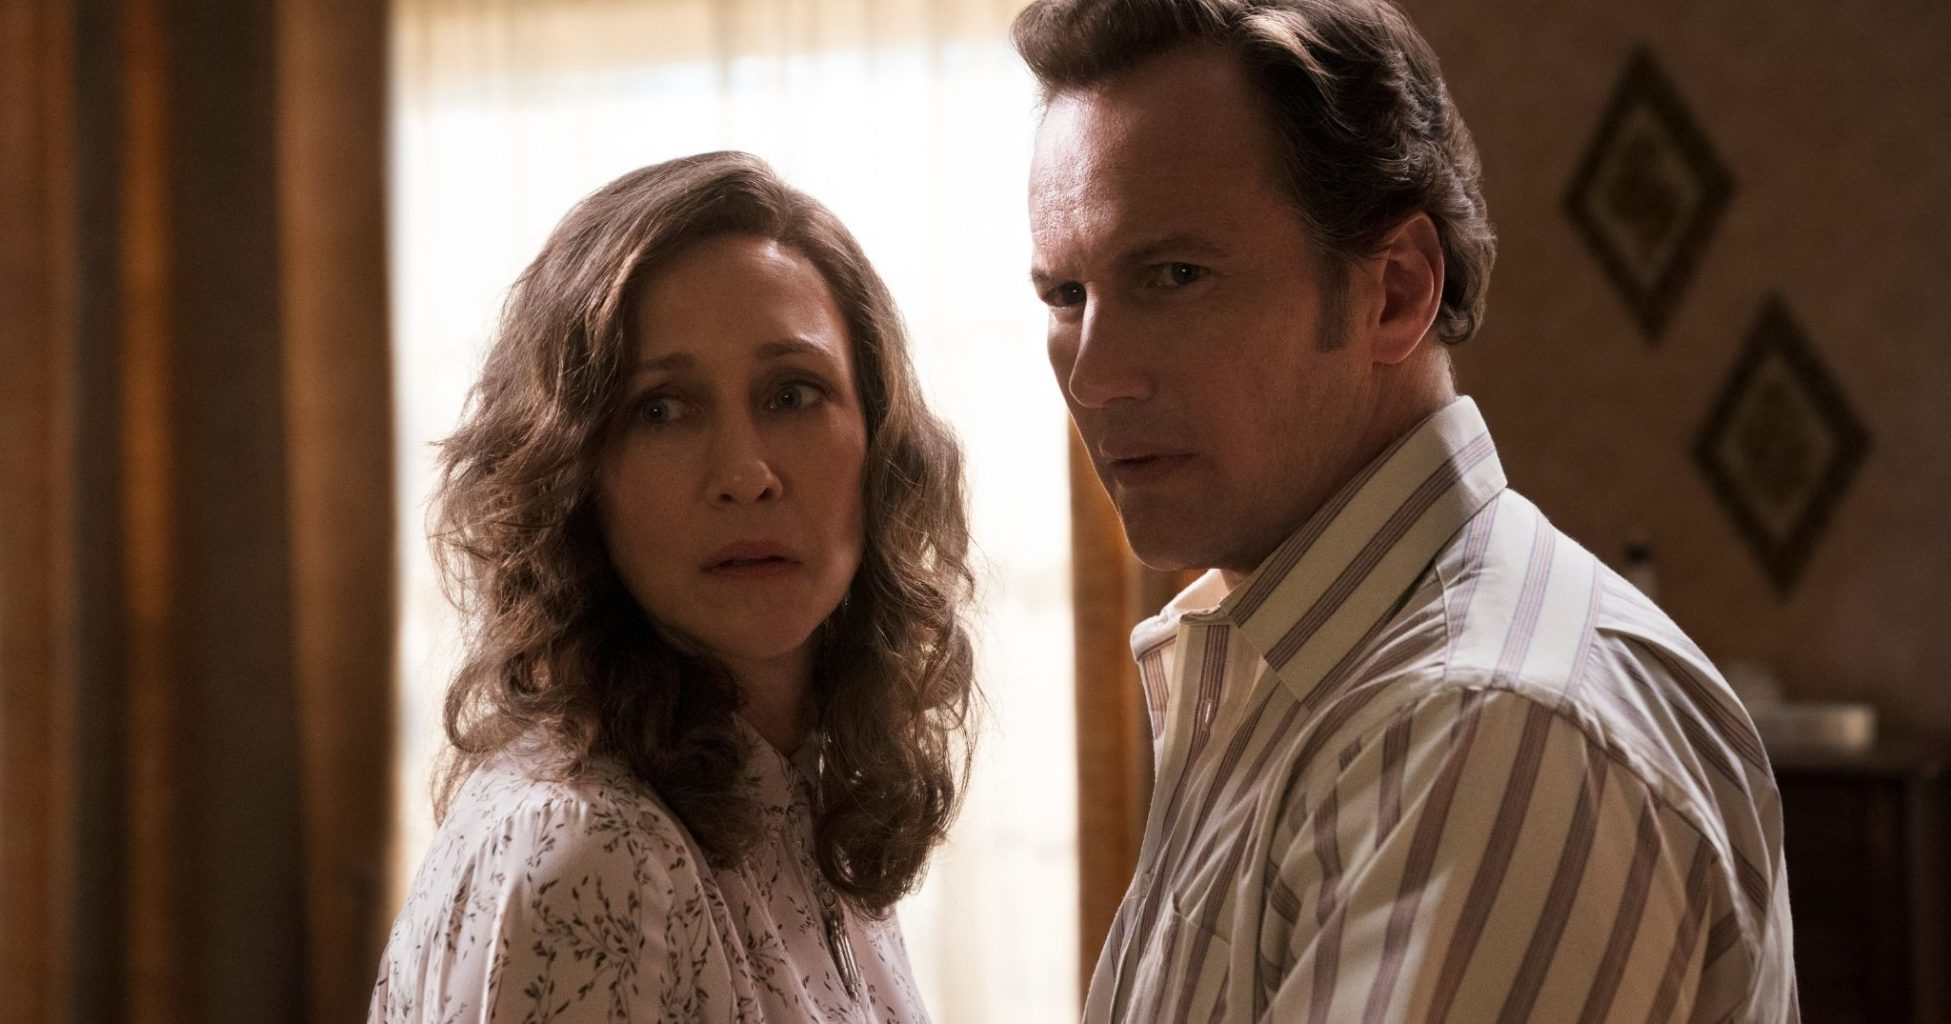 The Conjuring The Devil Made Me Do It Review